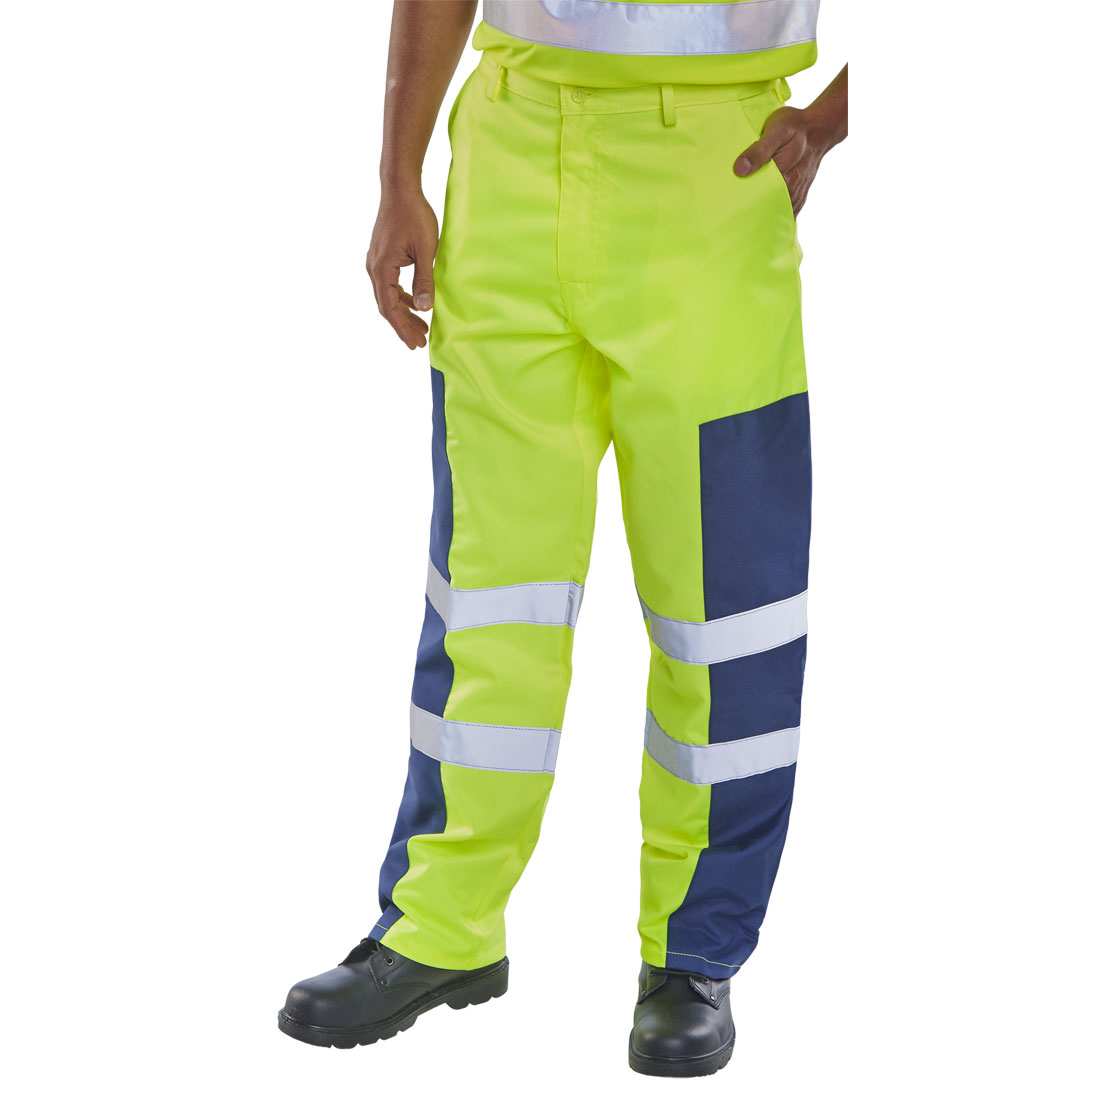 Click Workwear Trousers Hi-Vis Nylon Patch Yellow/Navy 42 Long Ref PCTSYNNP42T Up to 3 Day Leadtime